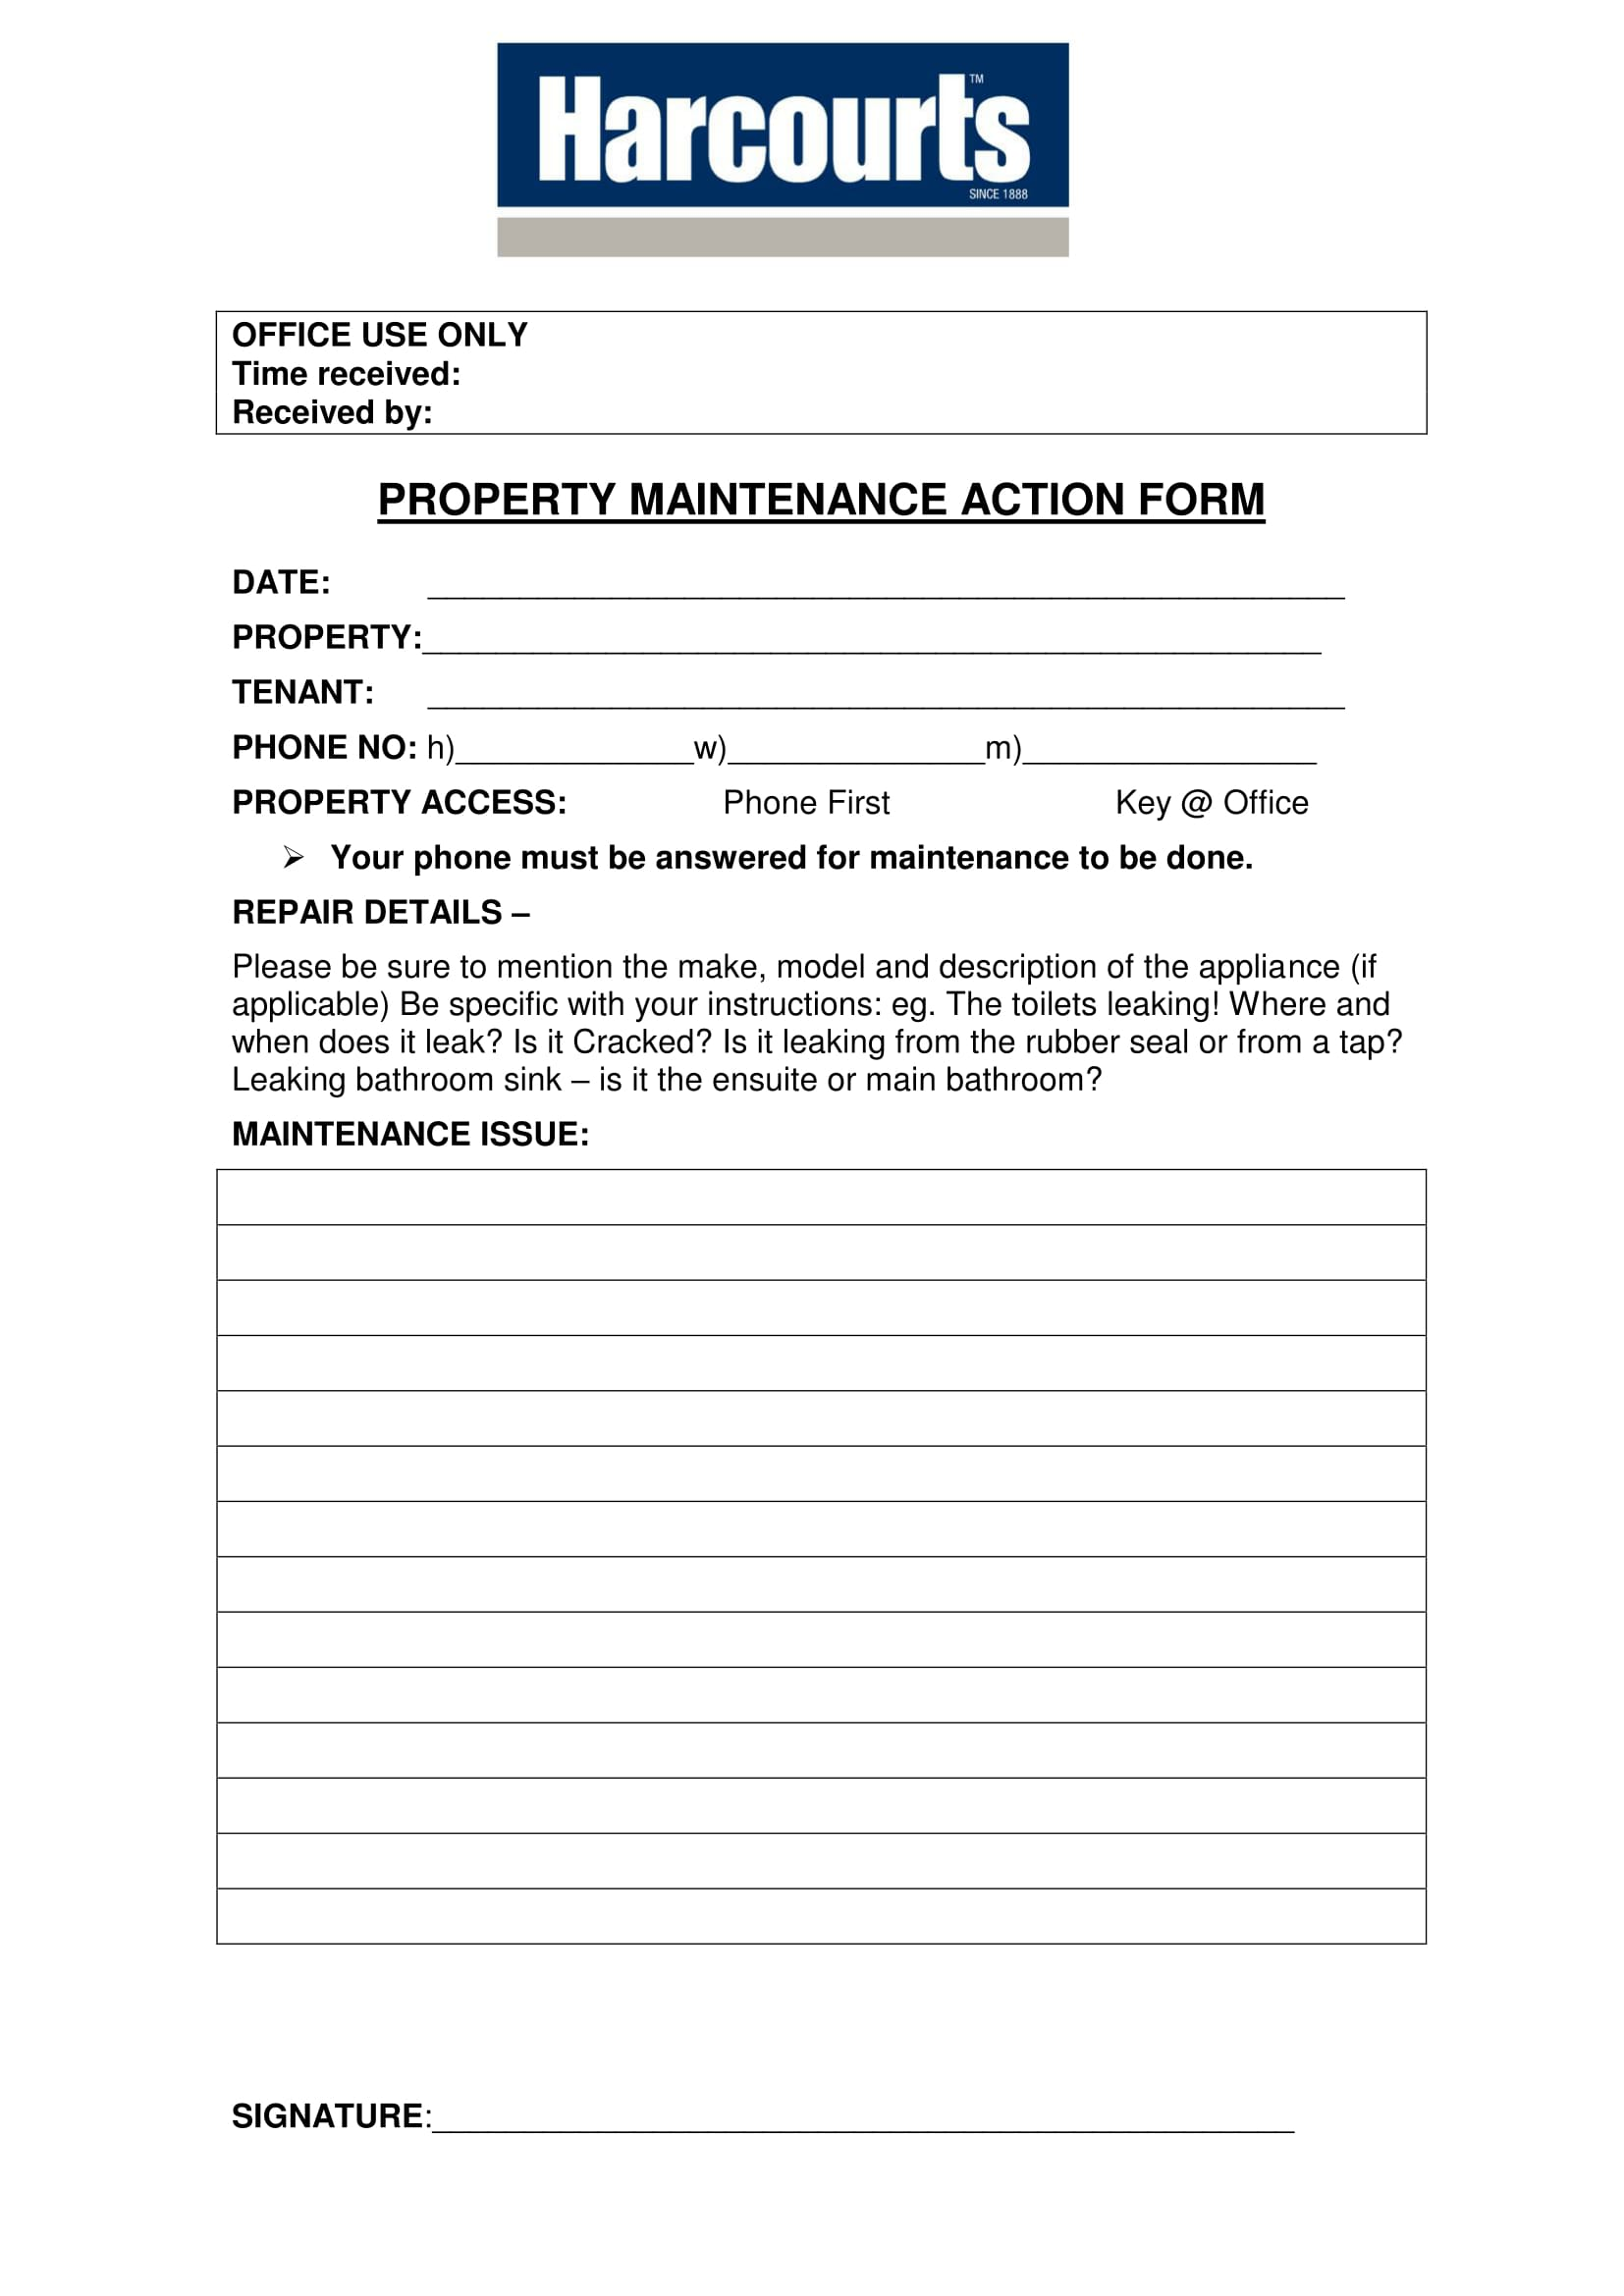 property maintenance action form 1